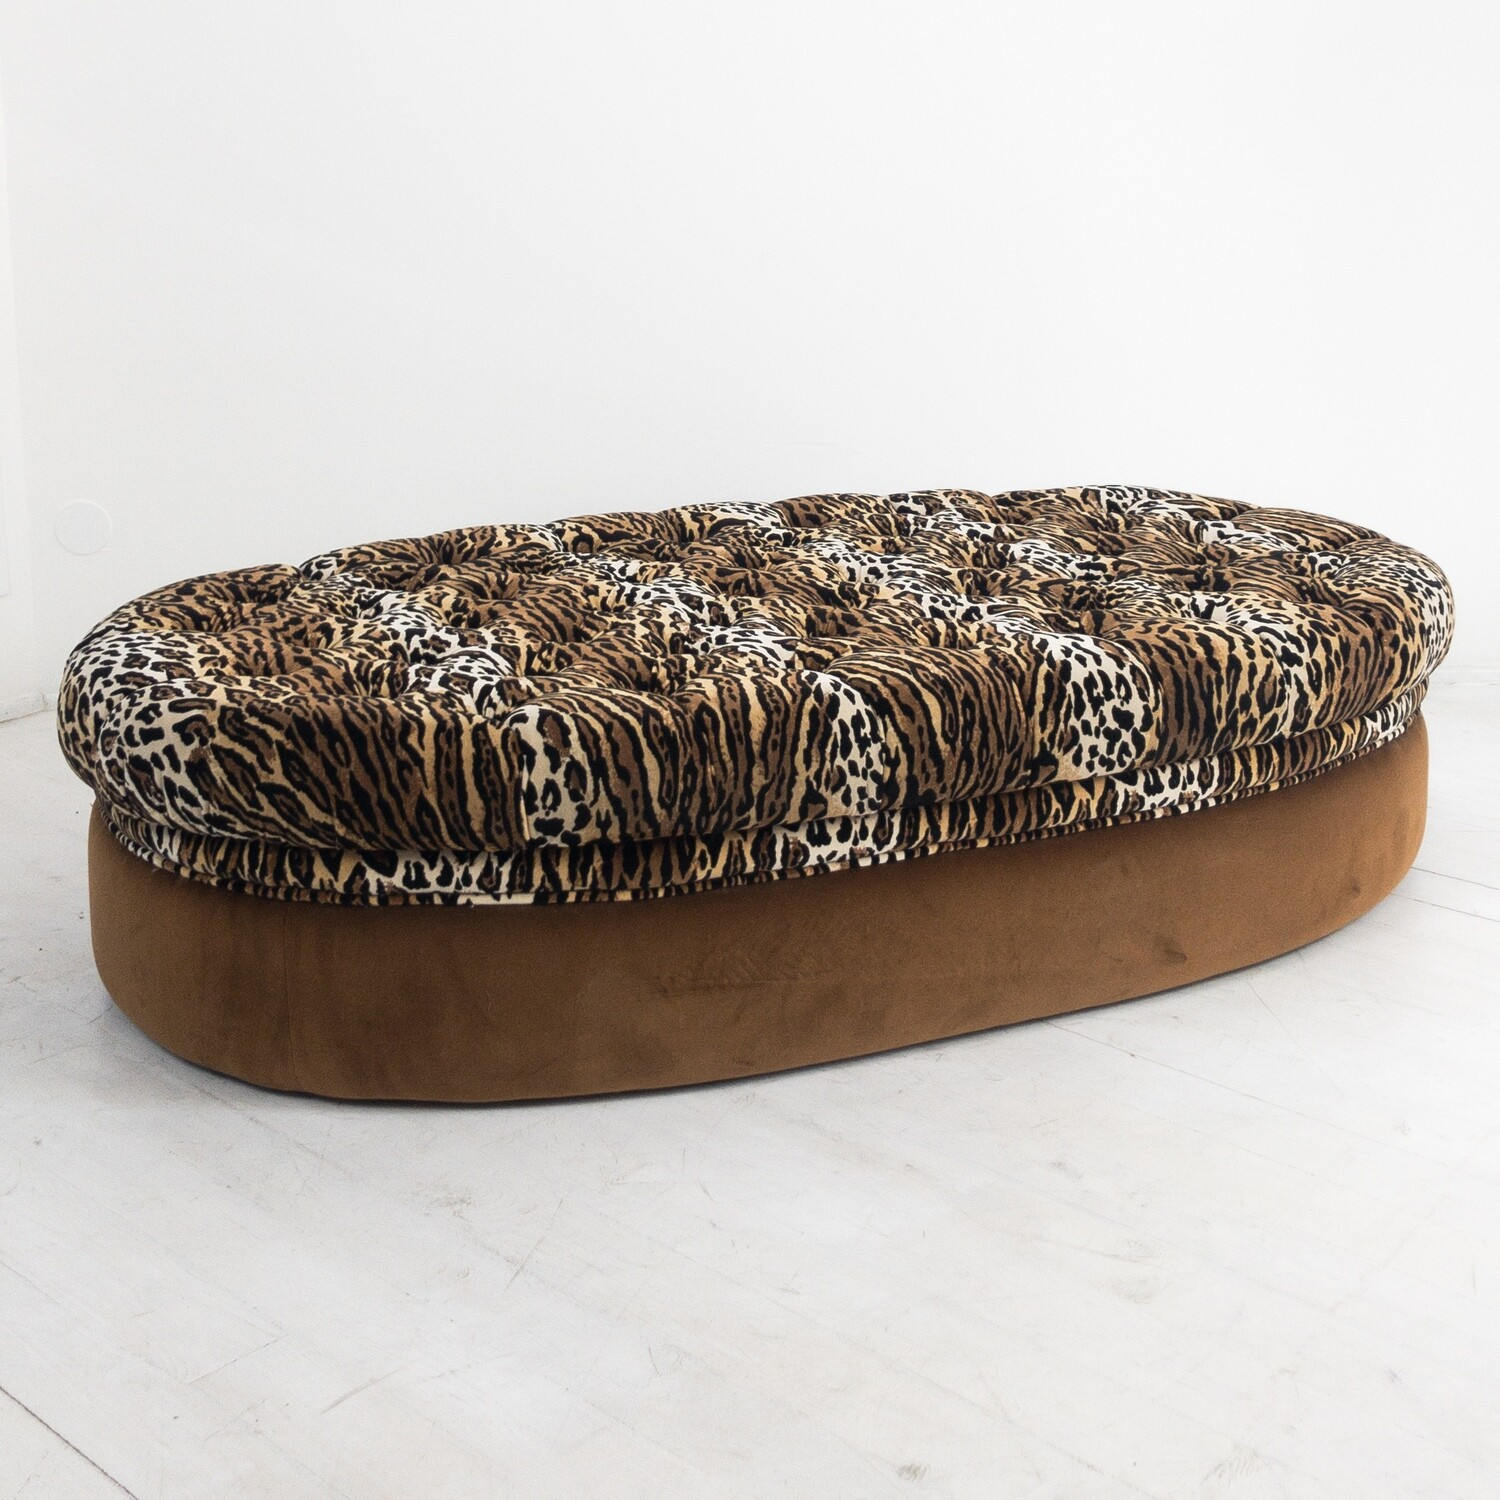 Animalier print coffee table / pouf